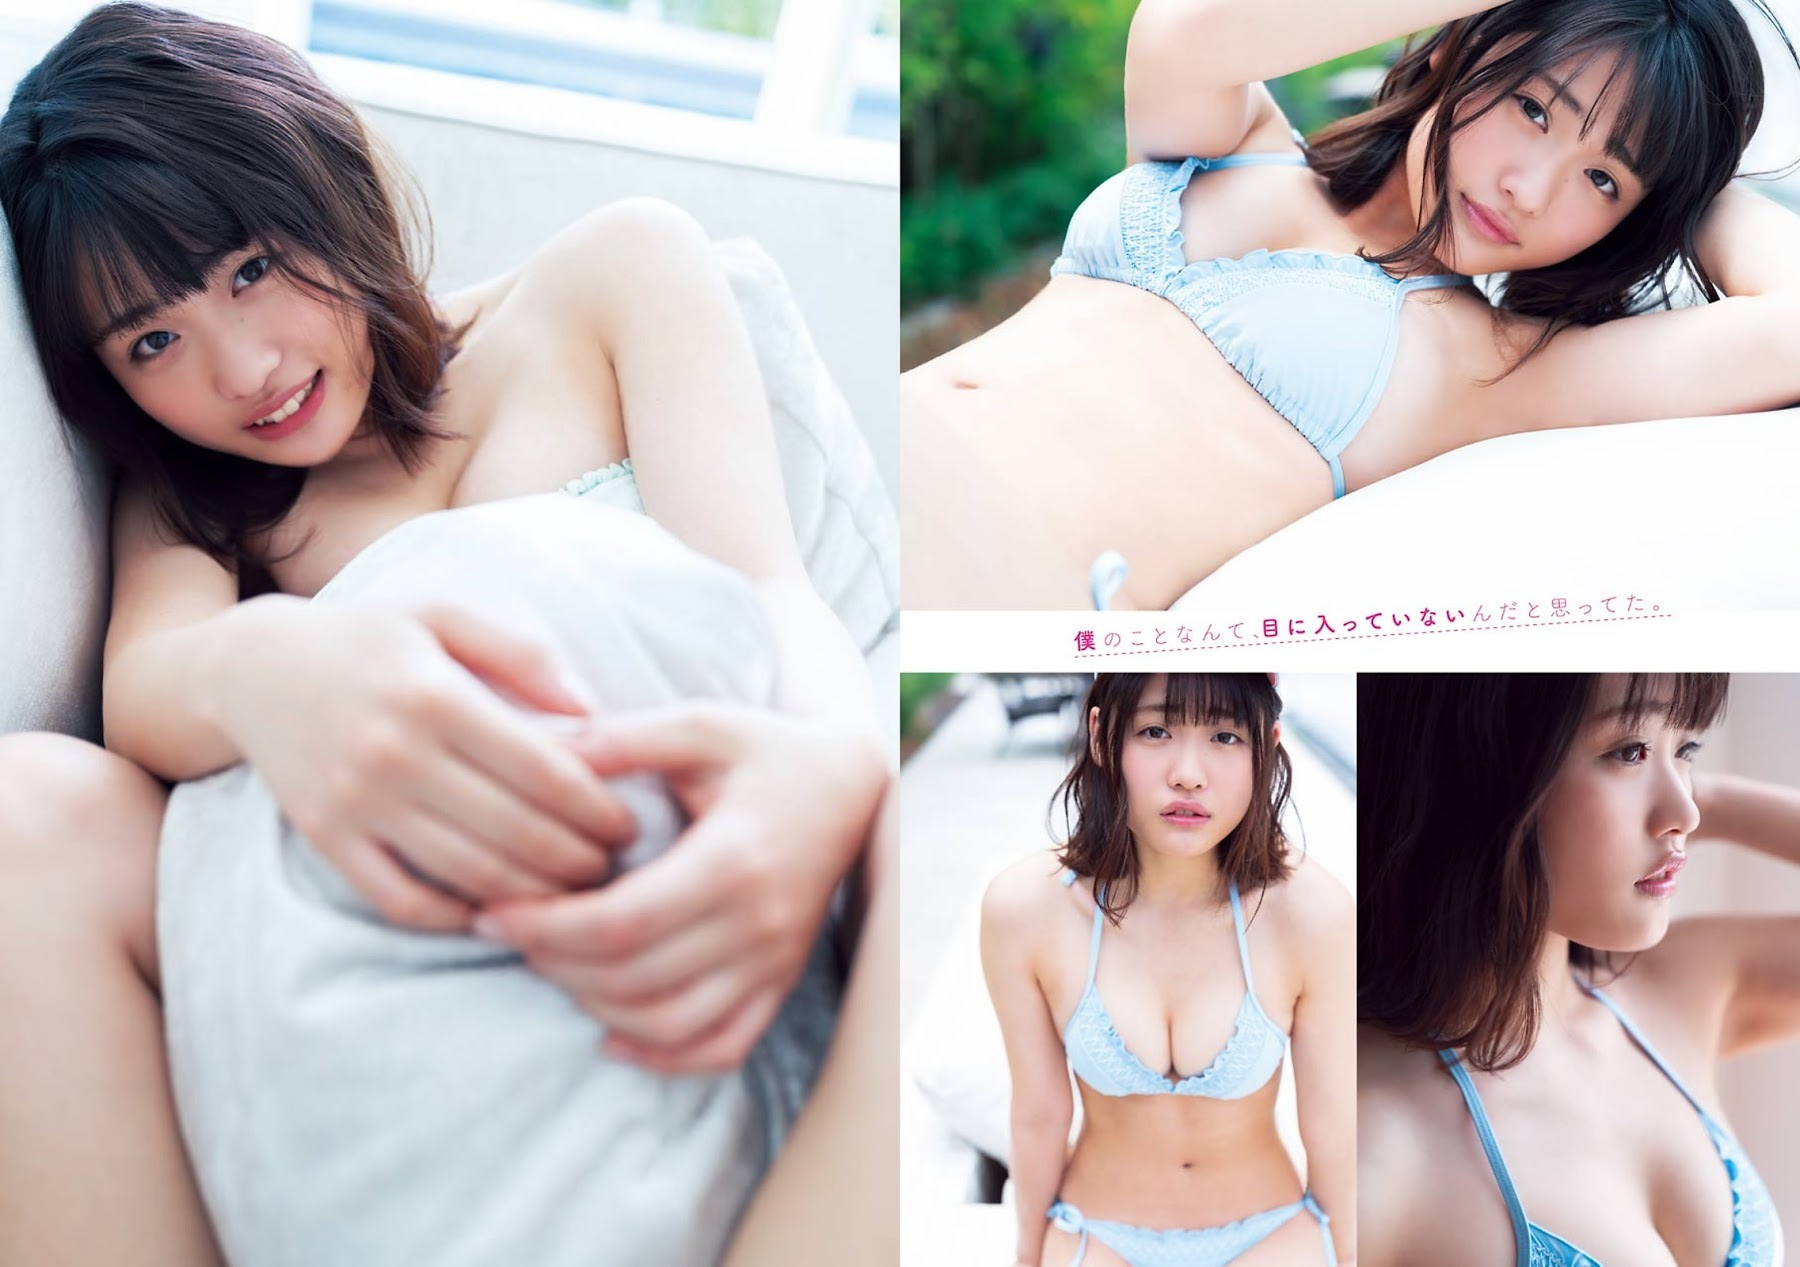 Momoka Ishida dominates the gravure industry with her versatile and beautiful body005